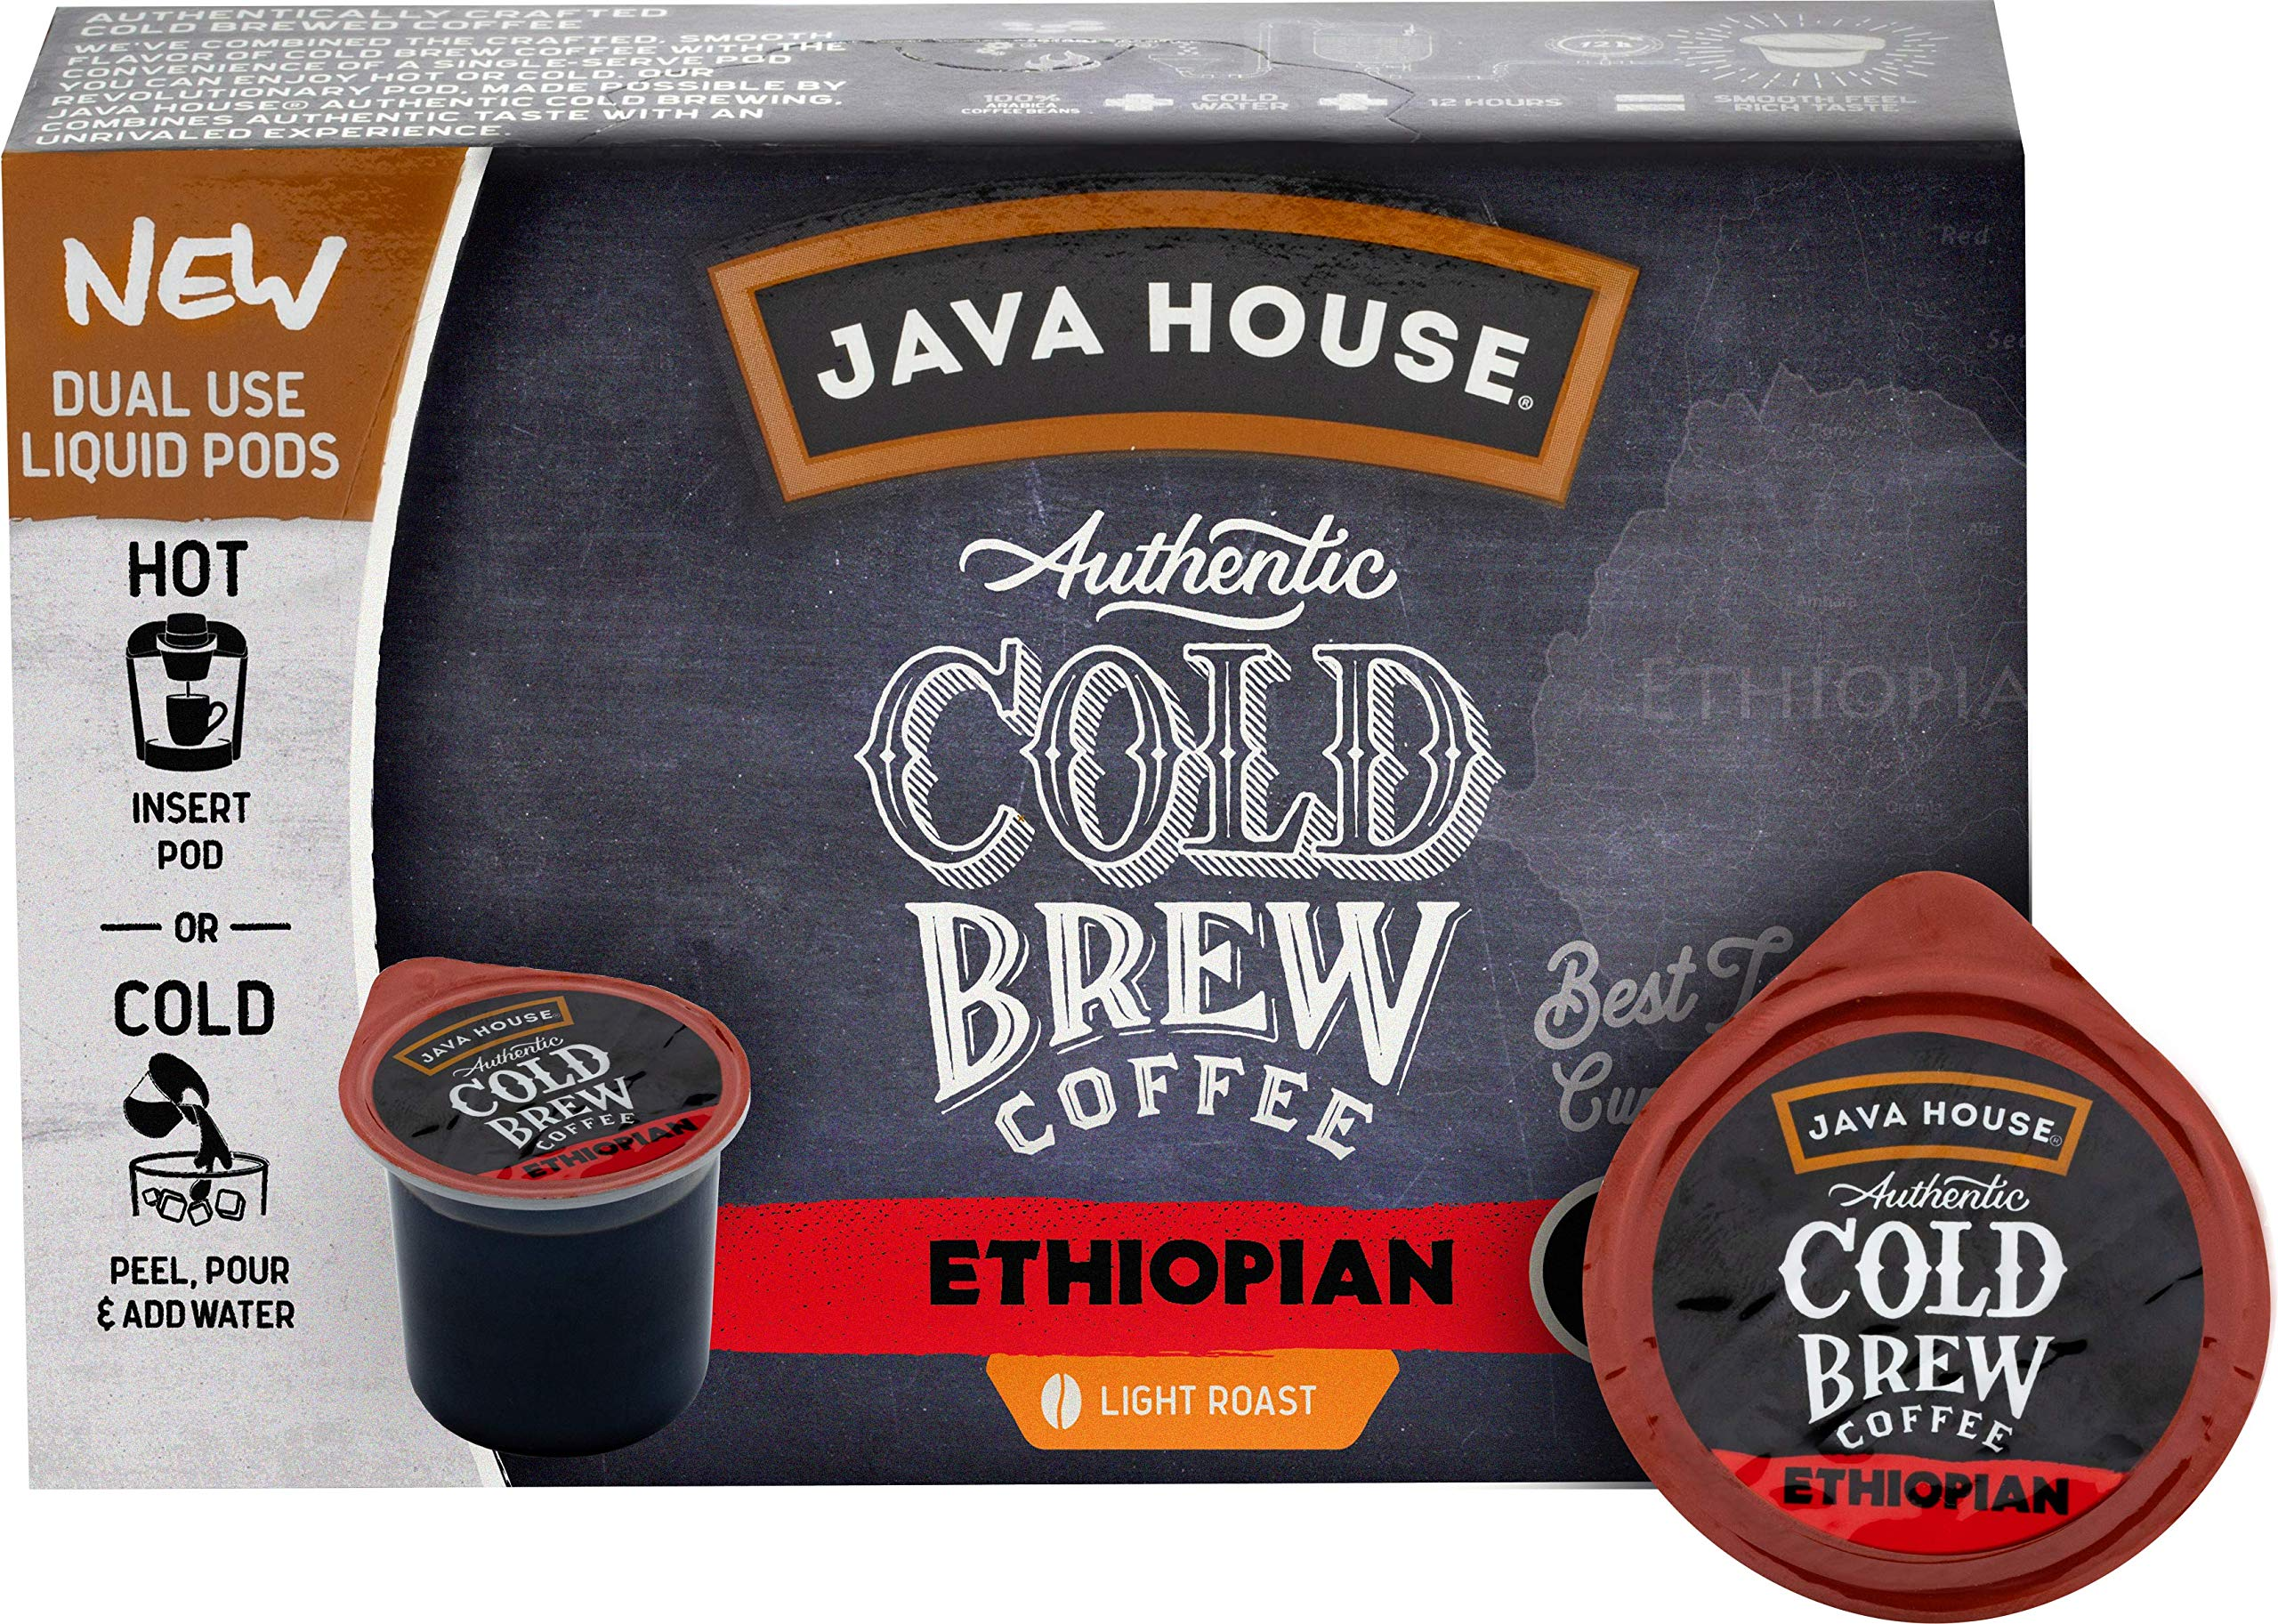 Java house cold brew k cup